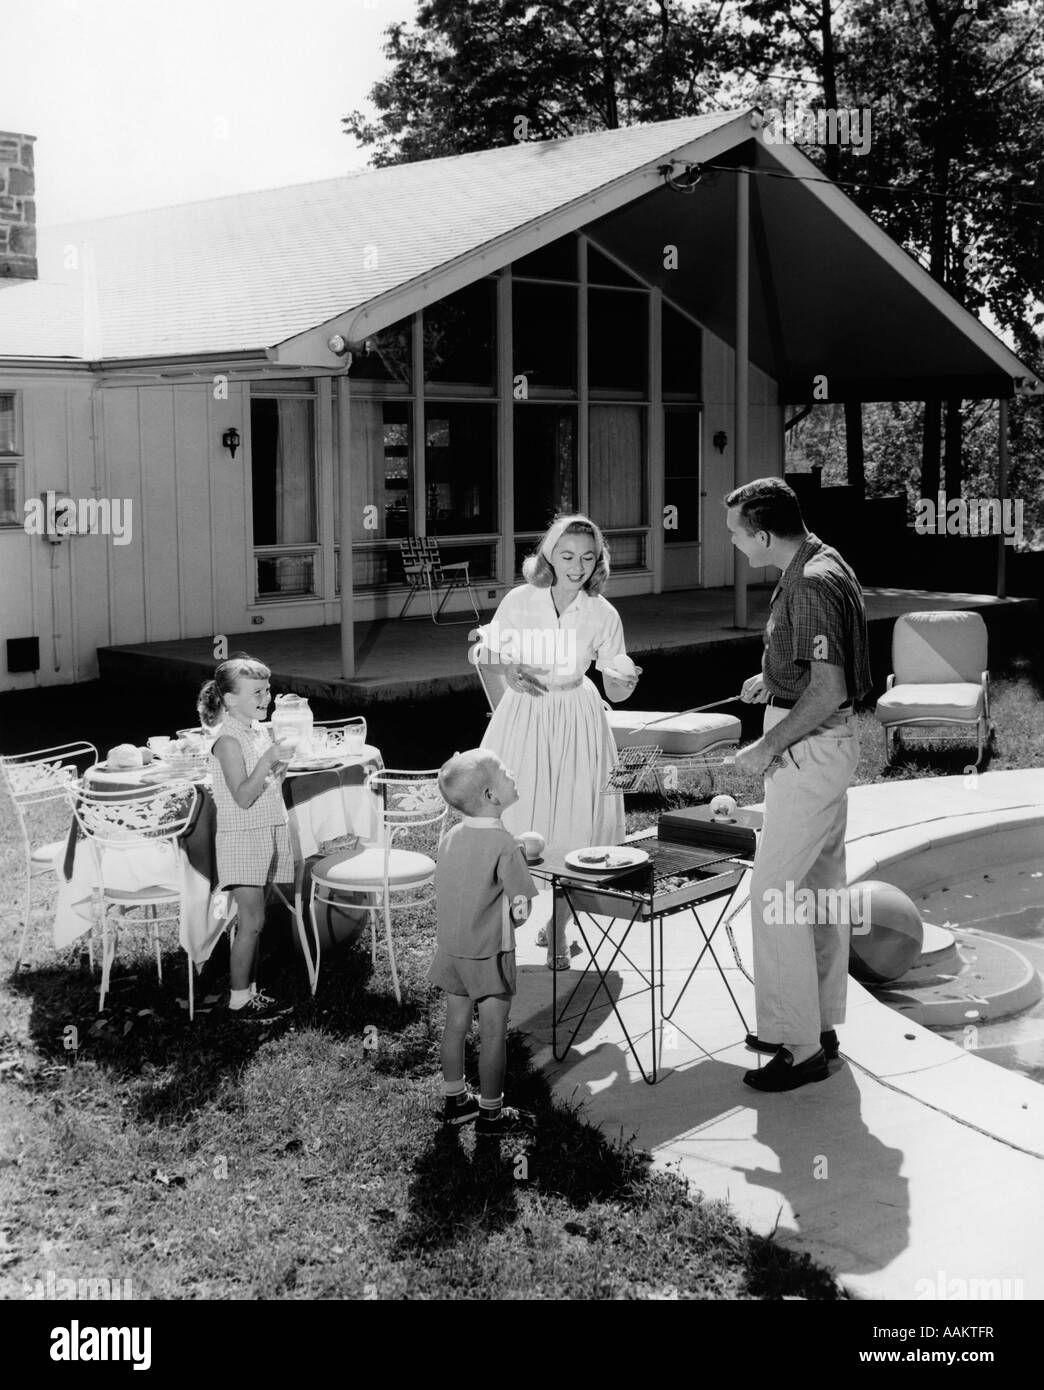 1950s FAMILY GRILLING HAMBURGERS BESIDE POOL IN BACKYARD COOKOUT - Stock Image